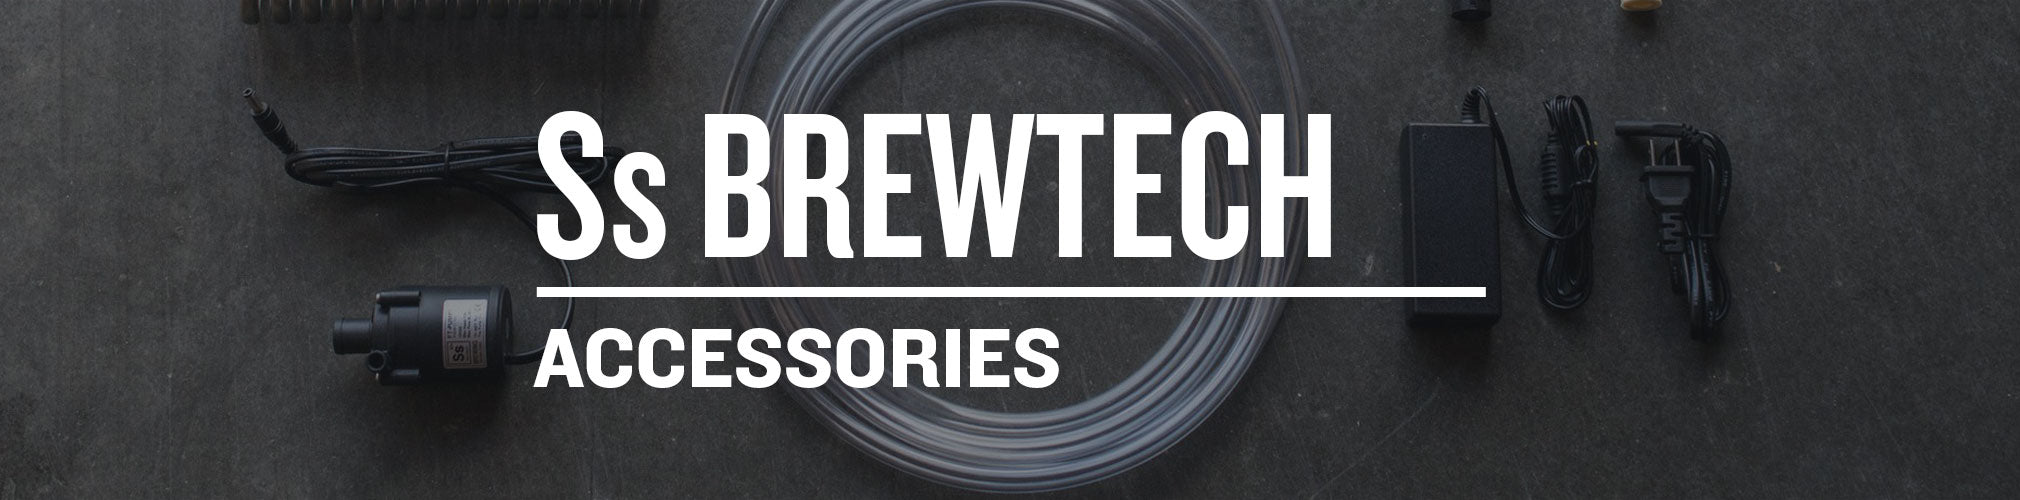 Ss Brewtech Accessories